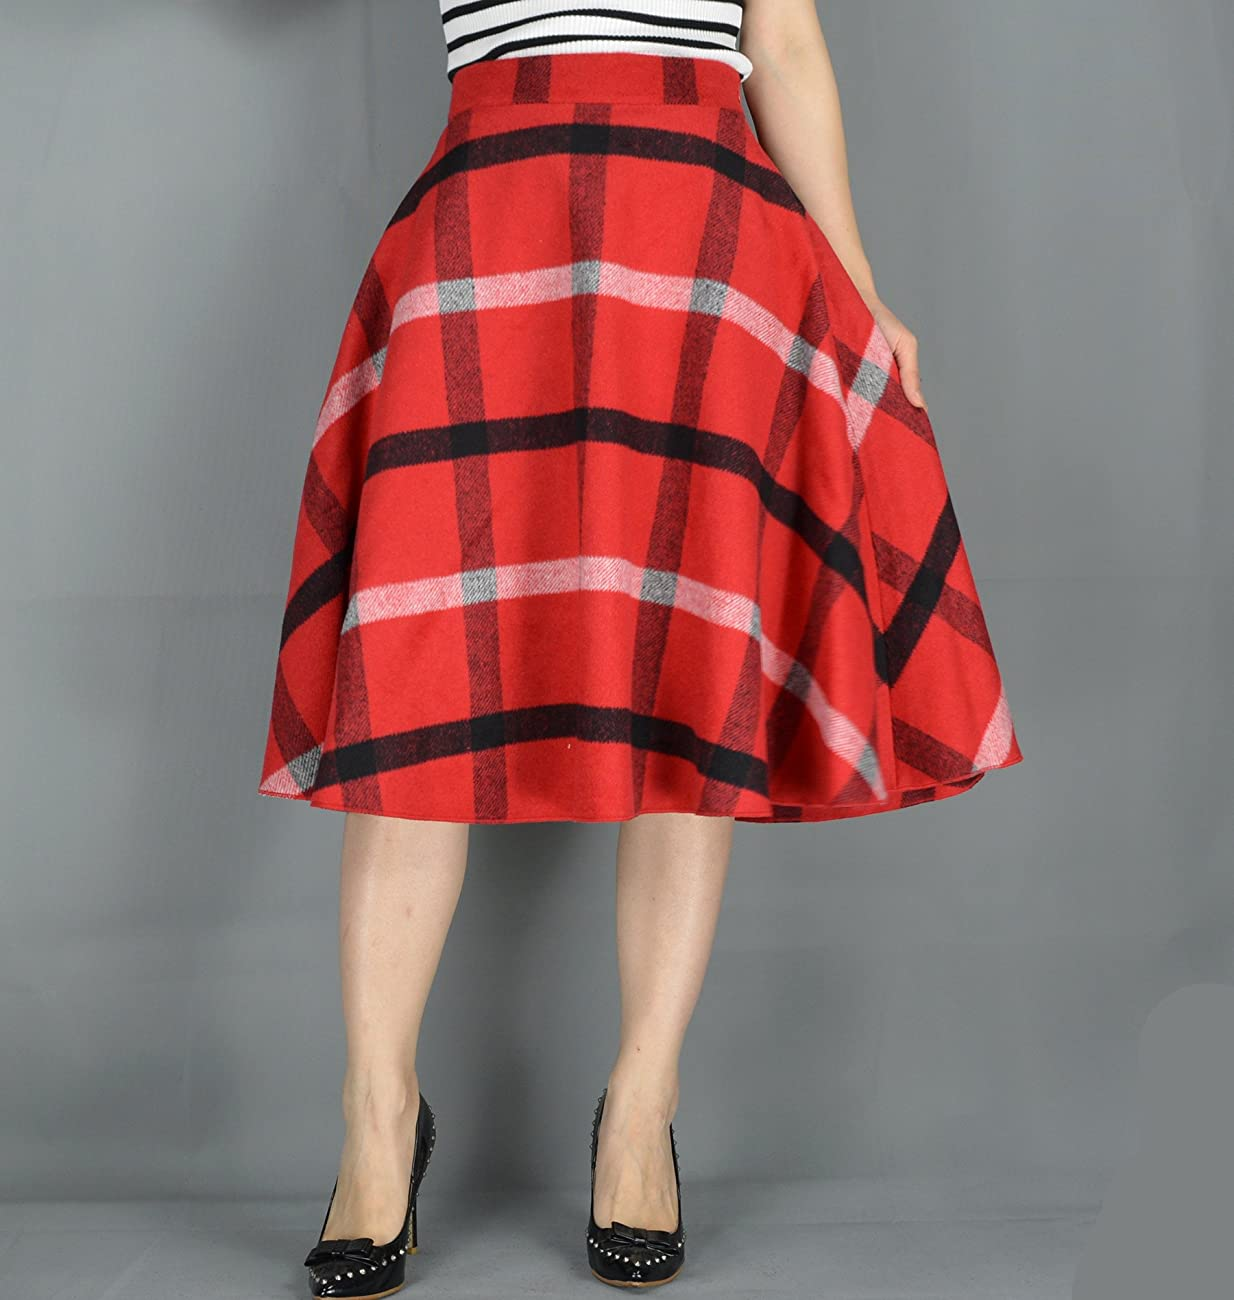 YSJ Women's Wool Midi Skirt A-Line Pleated Vintage Plaid Winter Swing Skirts 2